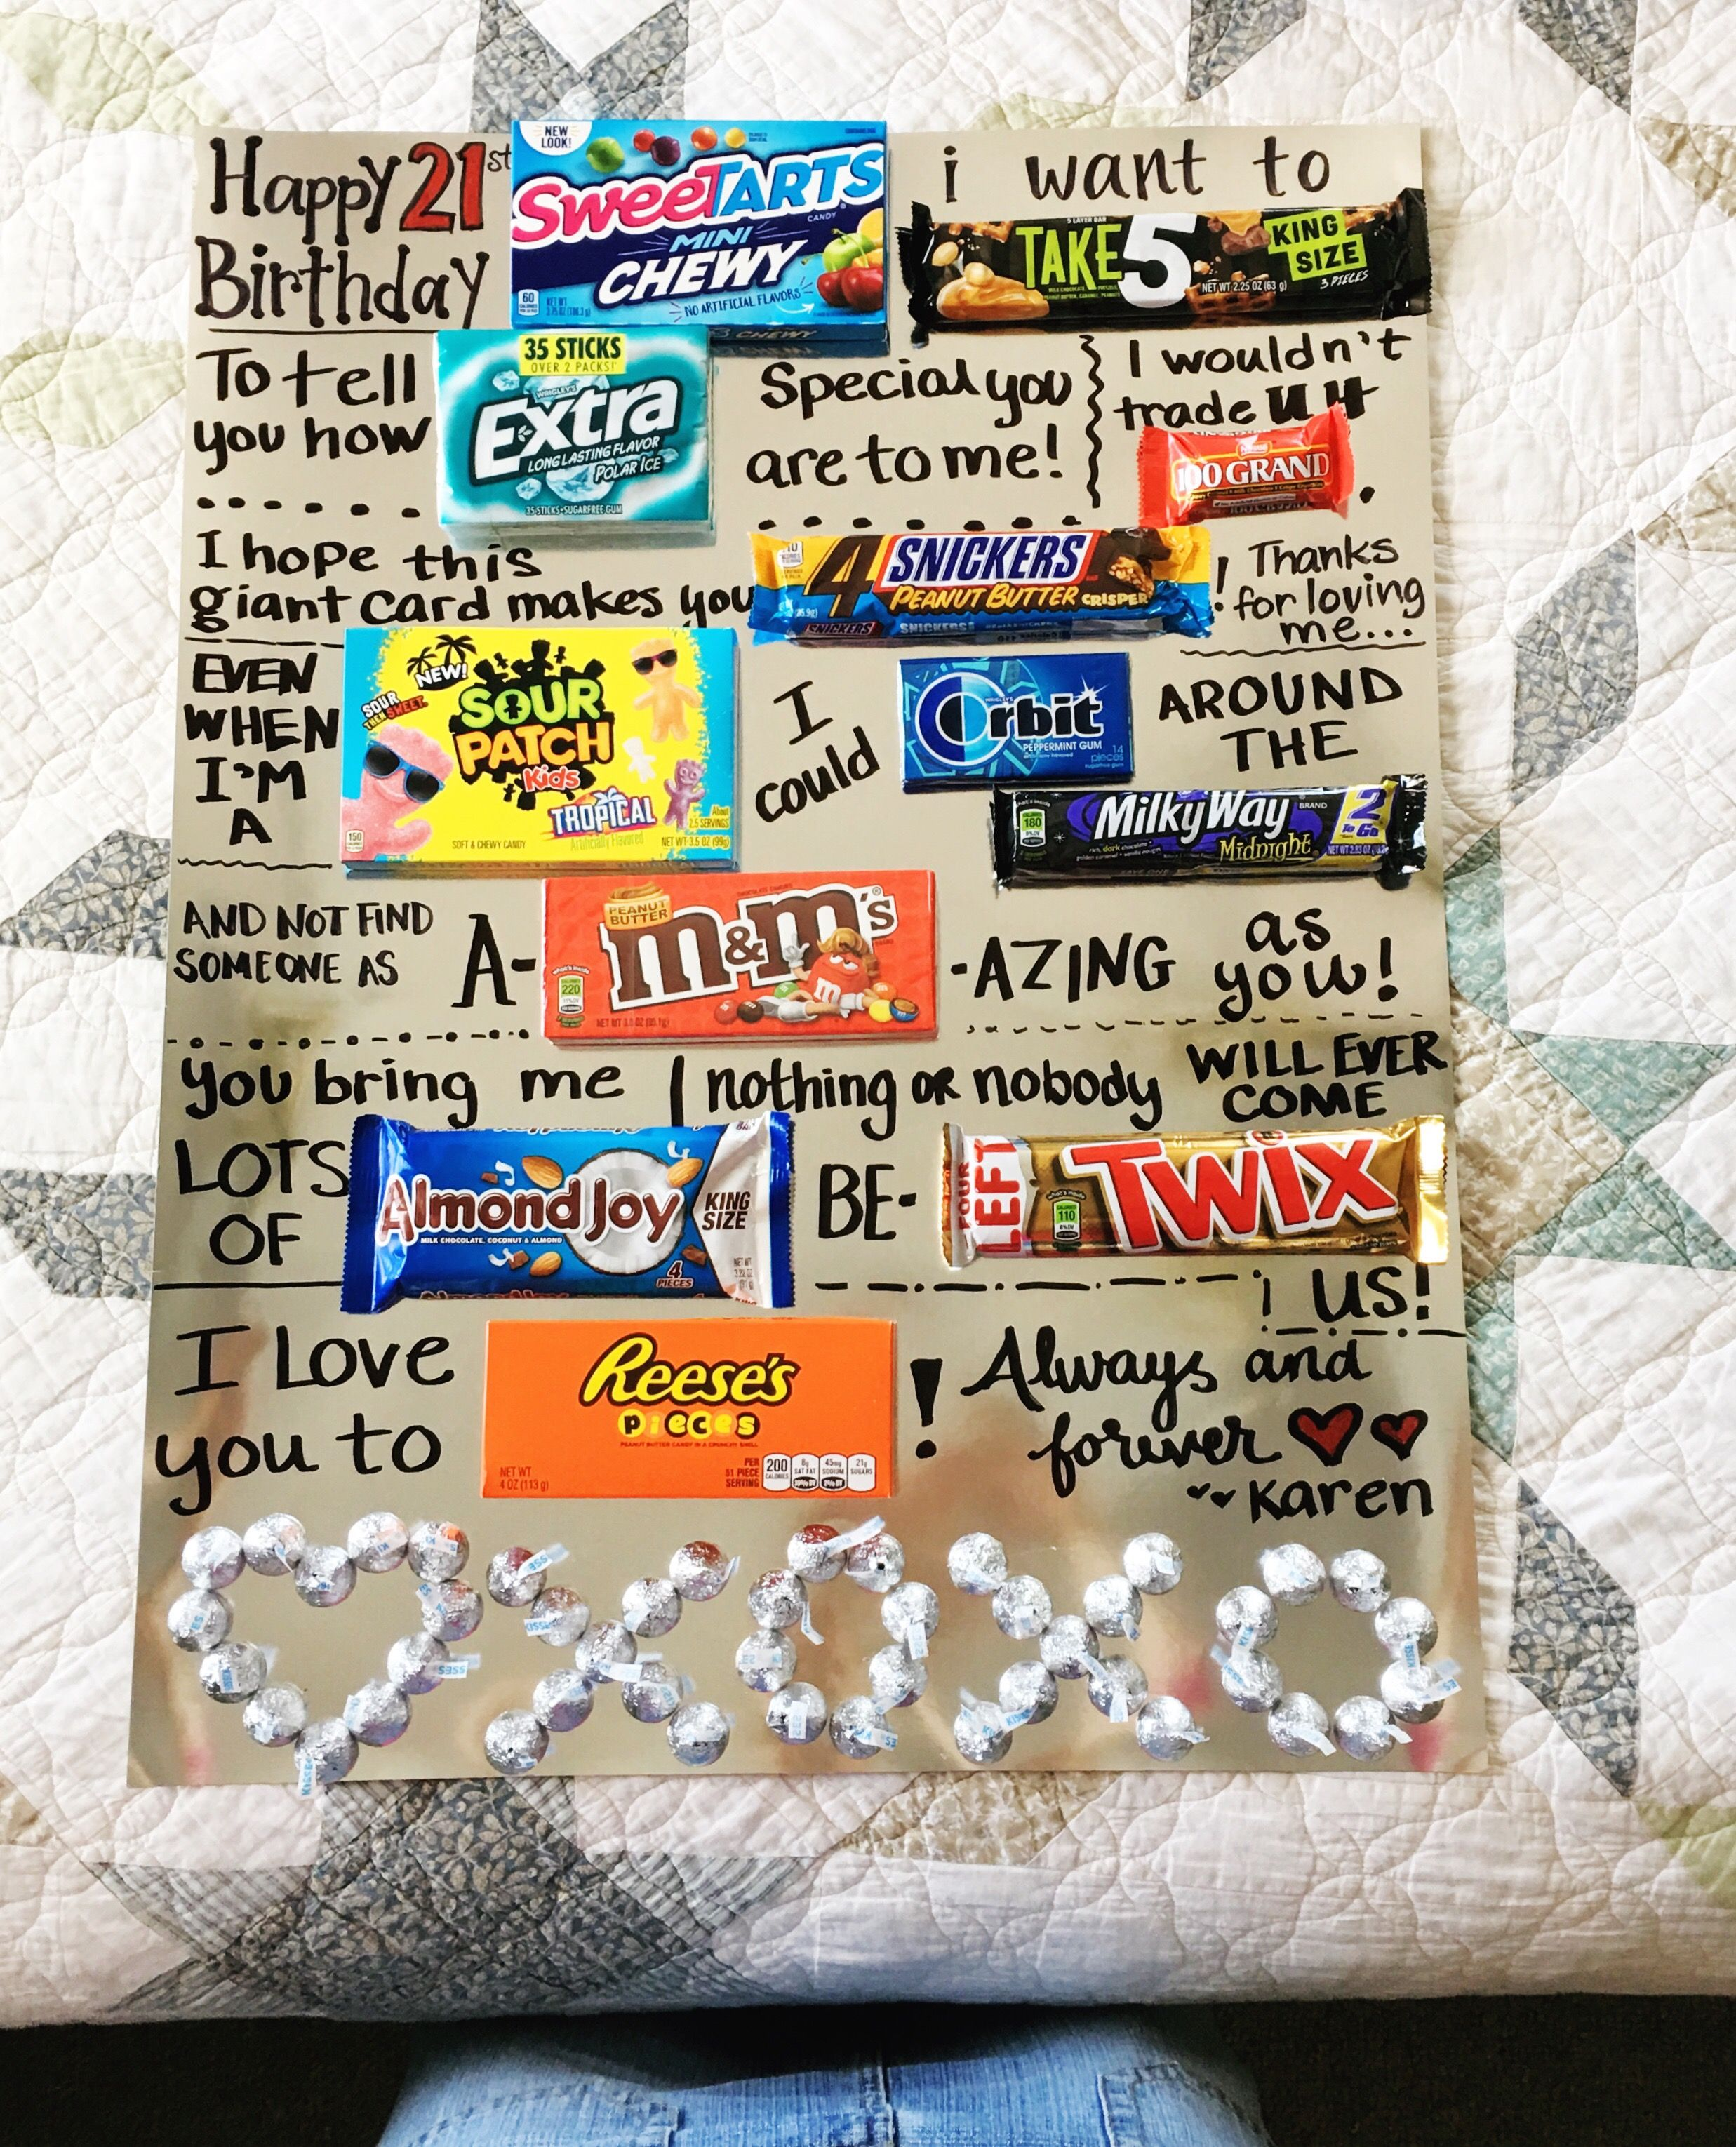 Boyfriend Birthday Gift Giant Card Candy Poster